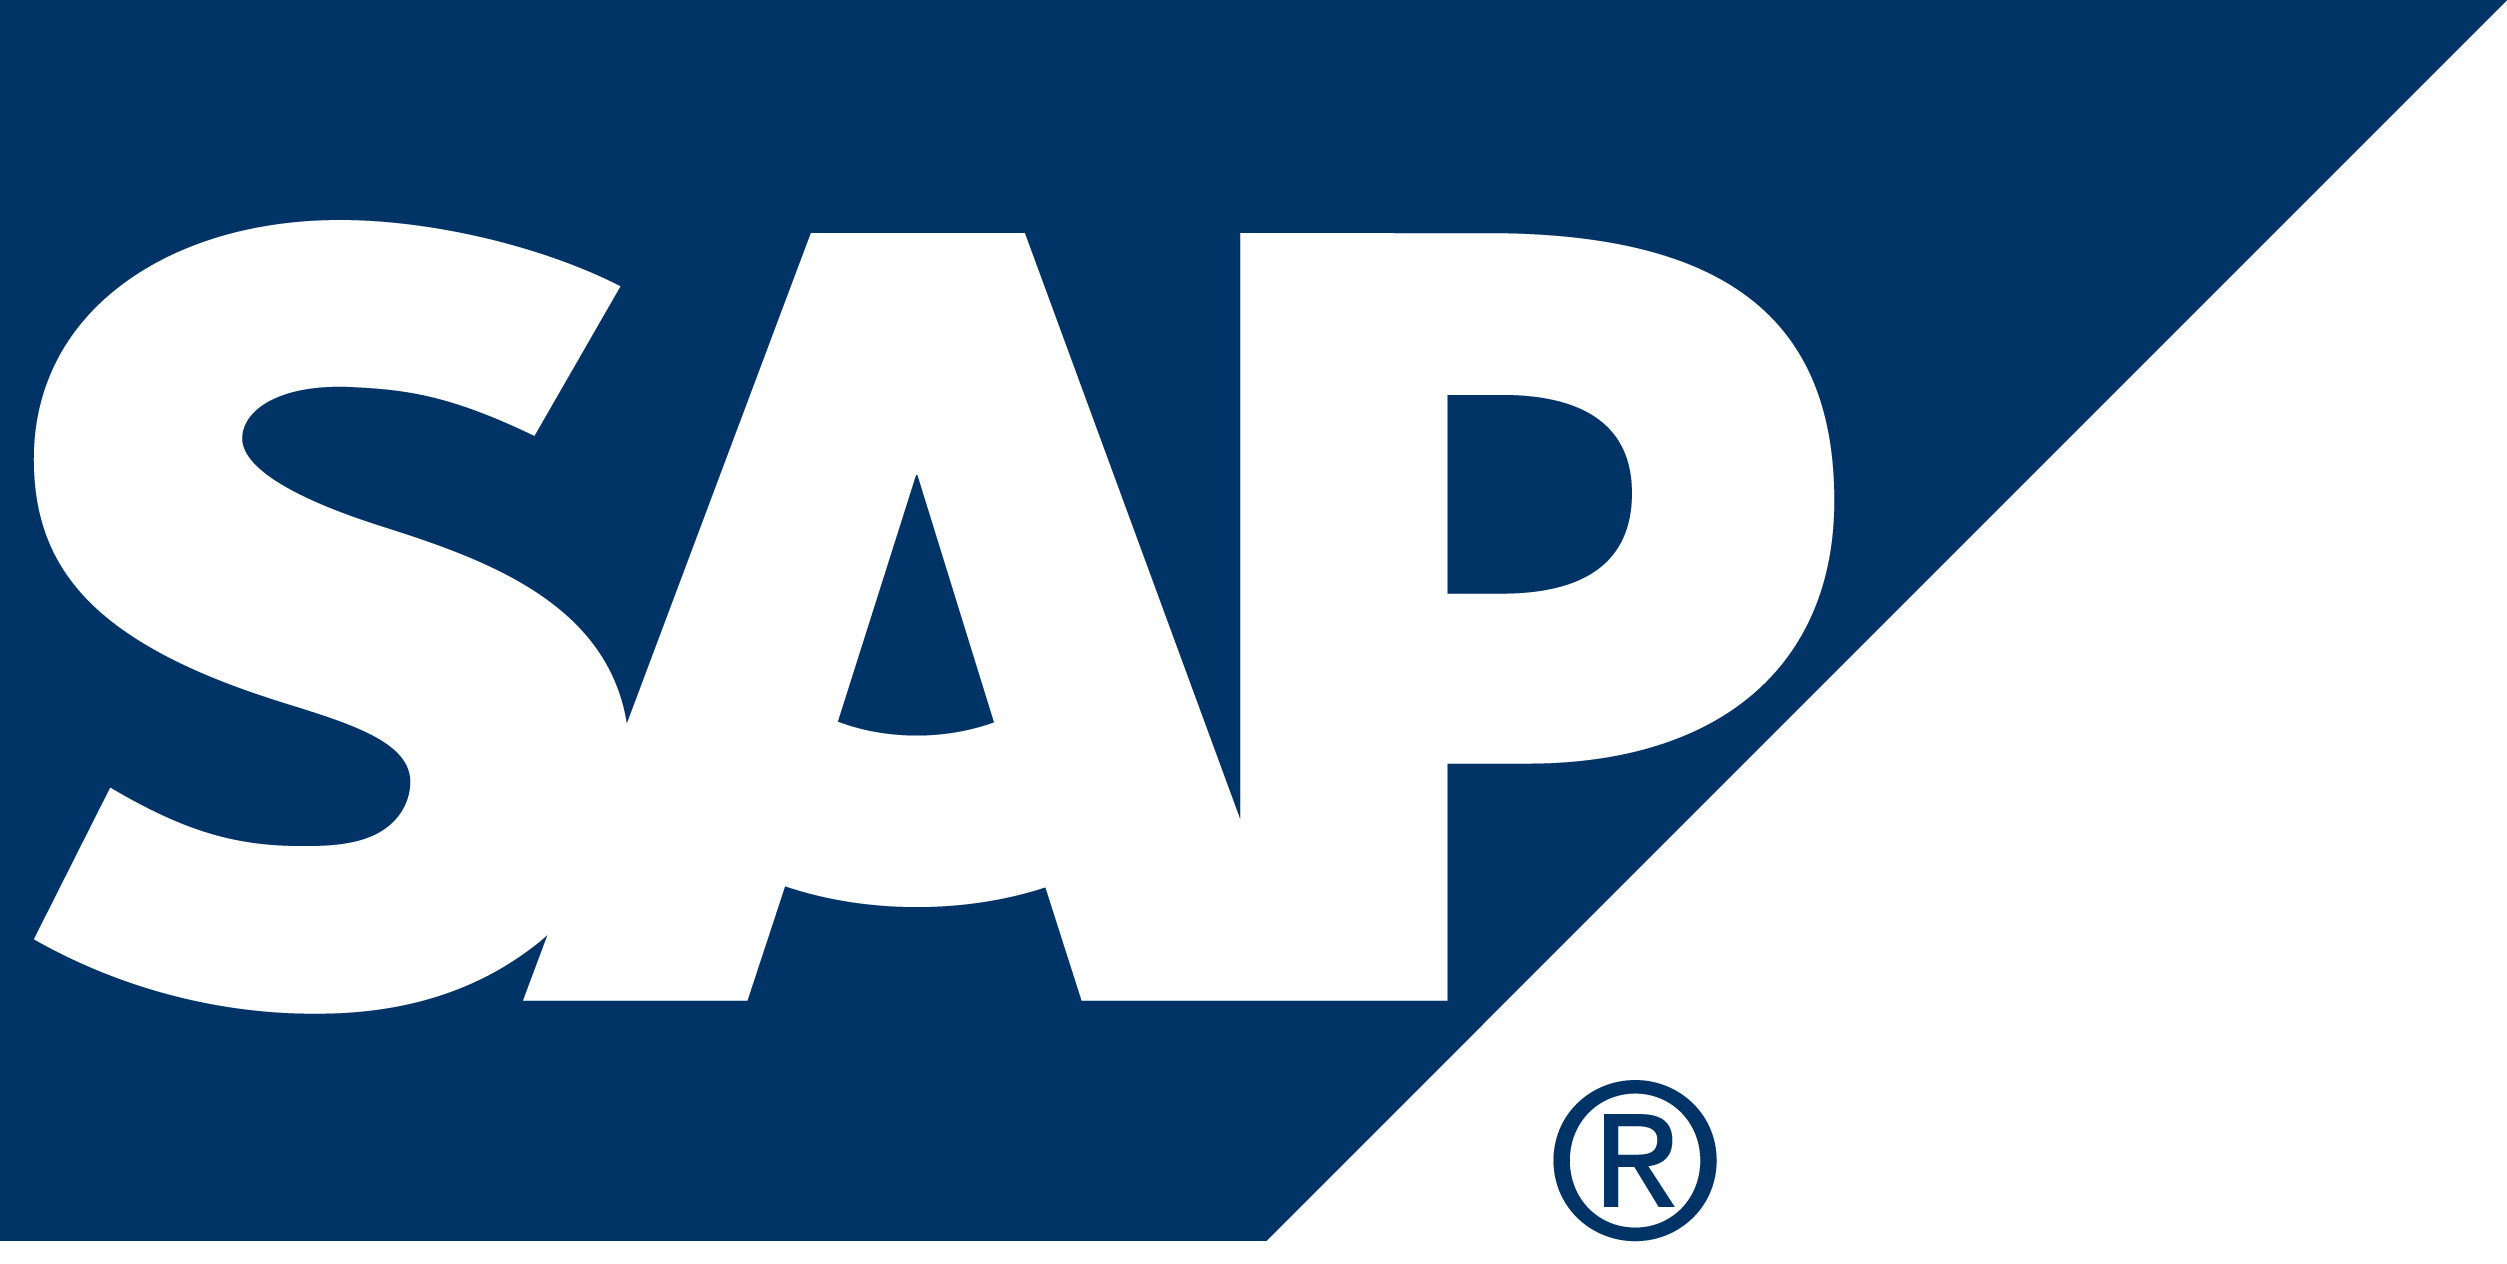 Will SAP be acquired?